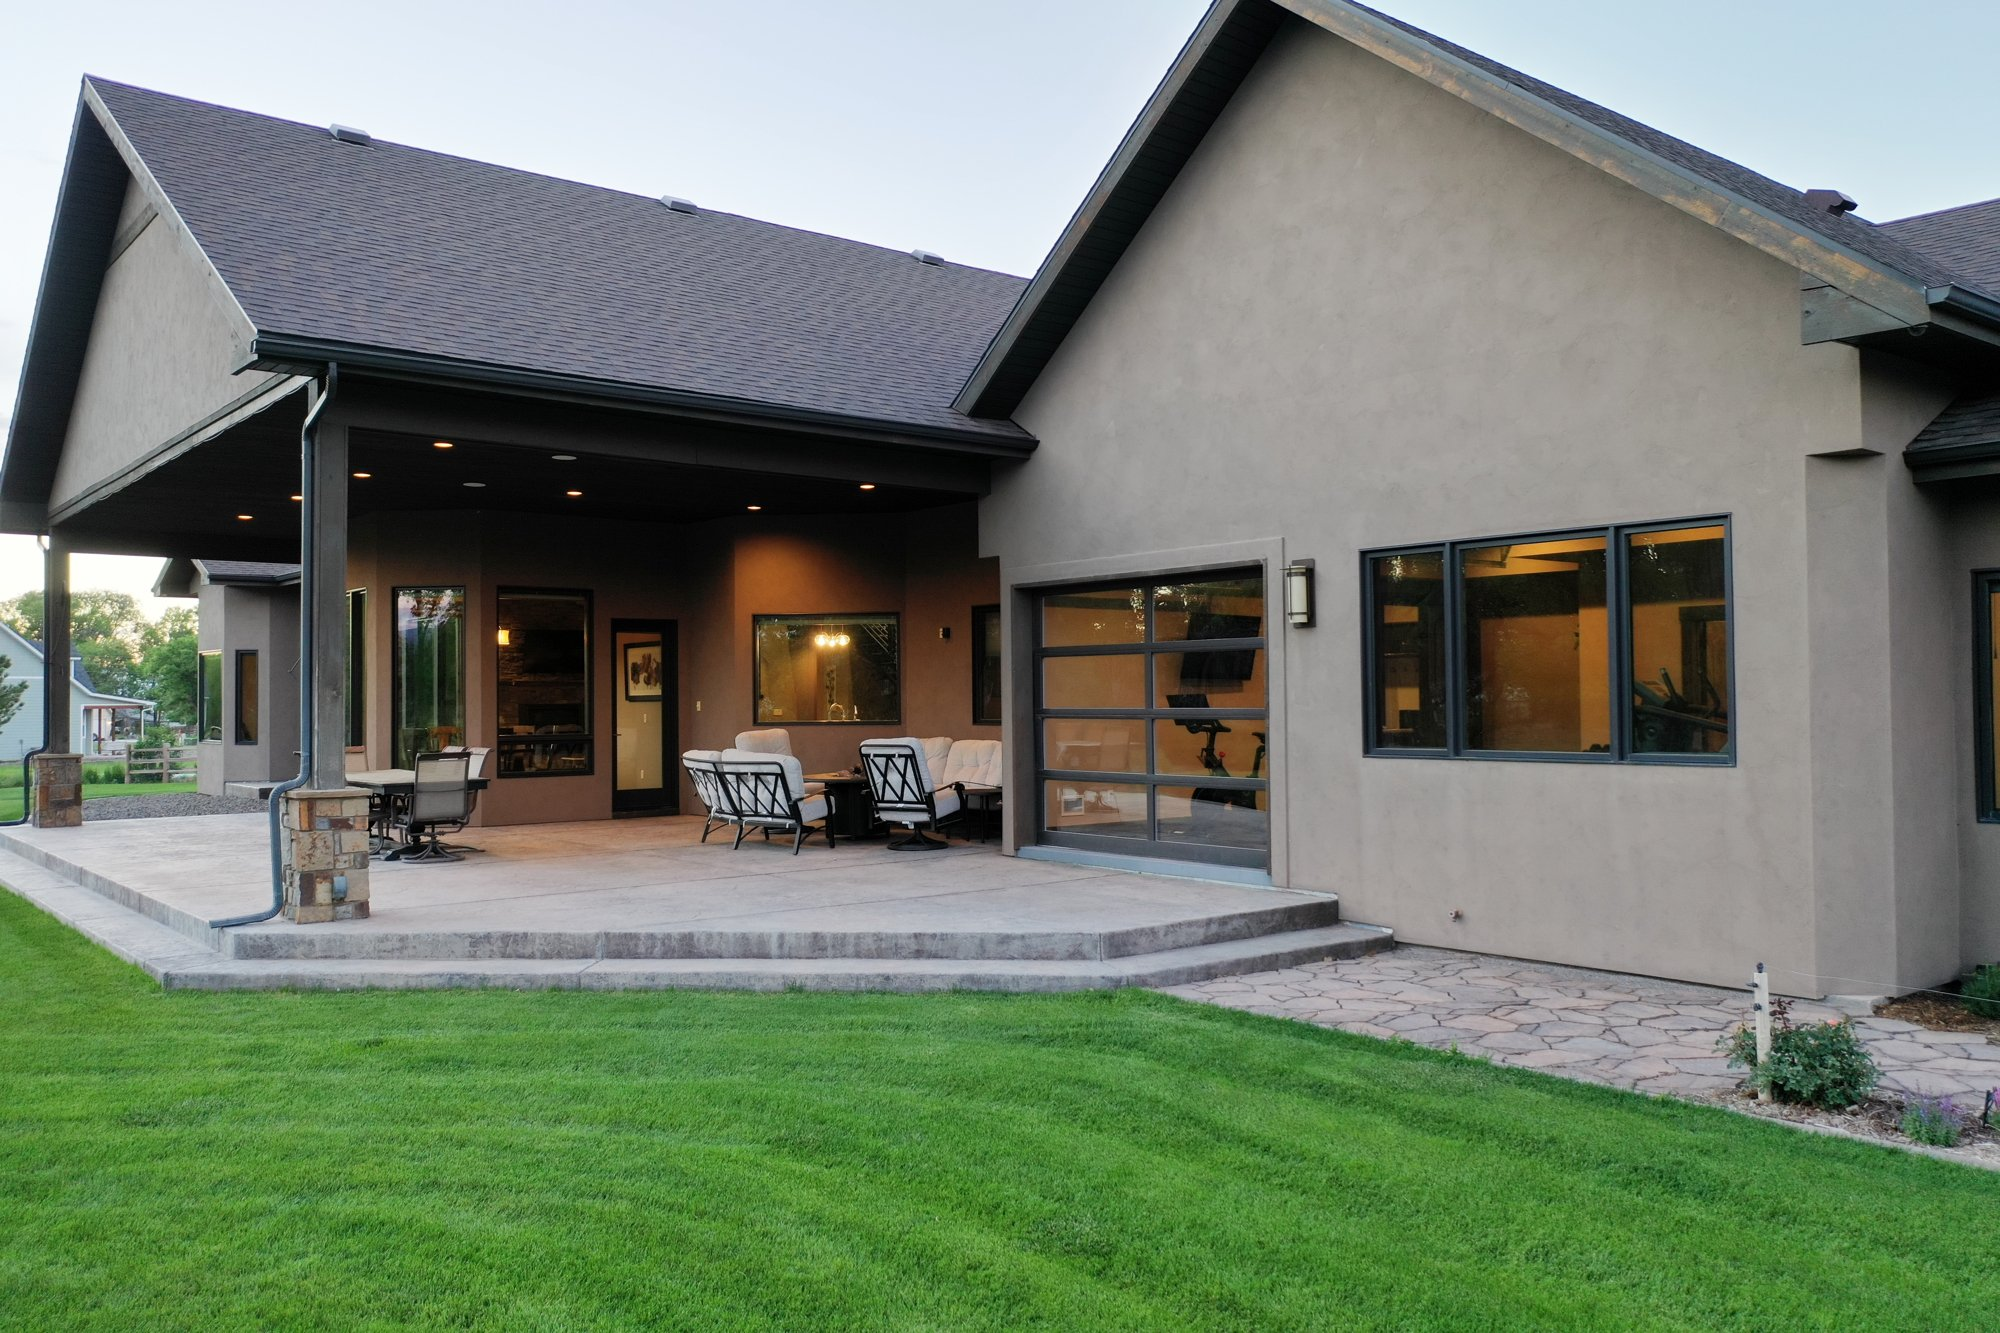 Back Patio Seating - 15067 6140 Ln Montrose, CO 81403 - Atha Team Luxury Real Estate